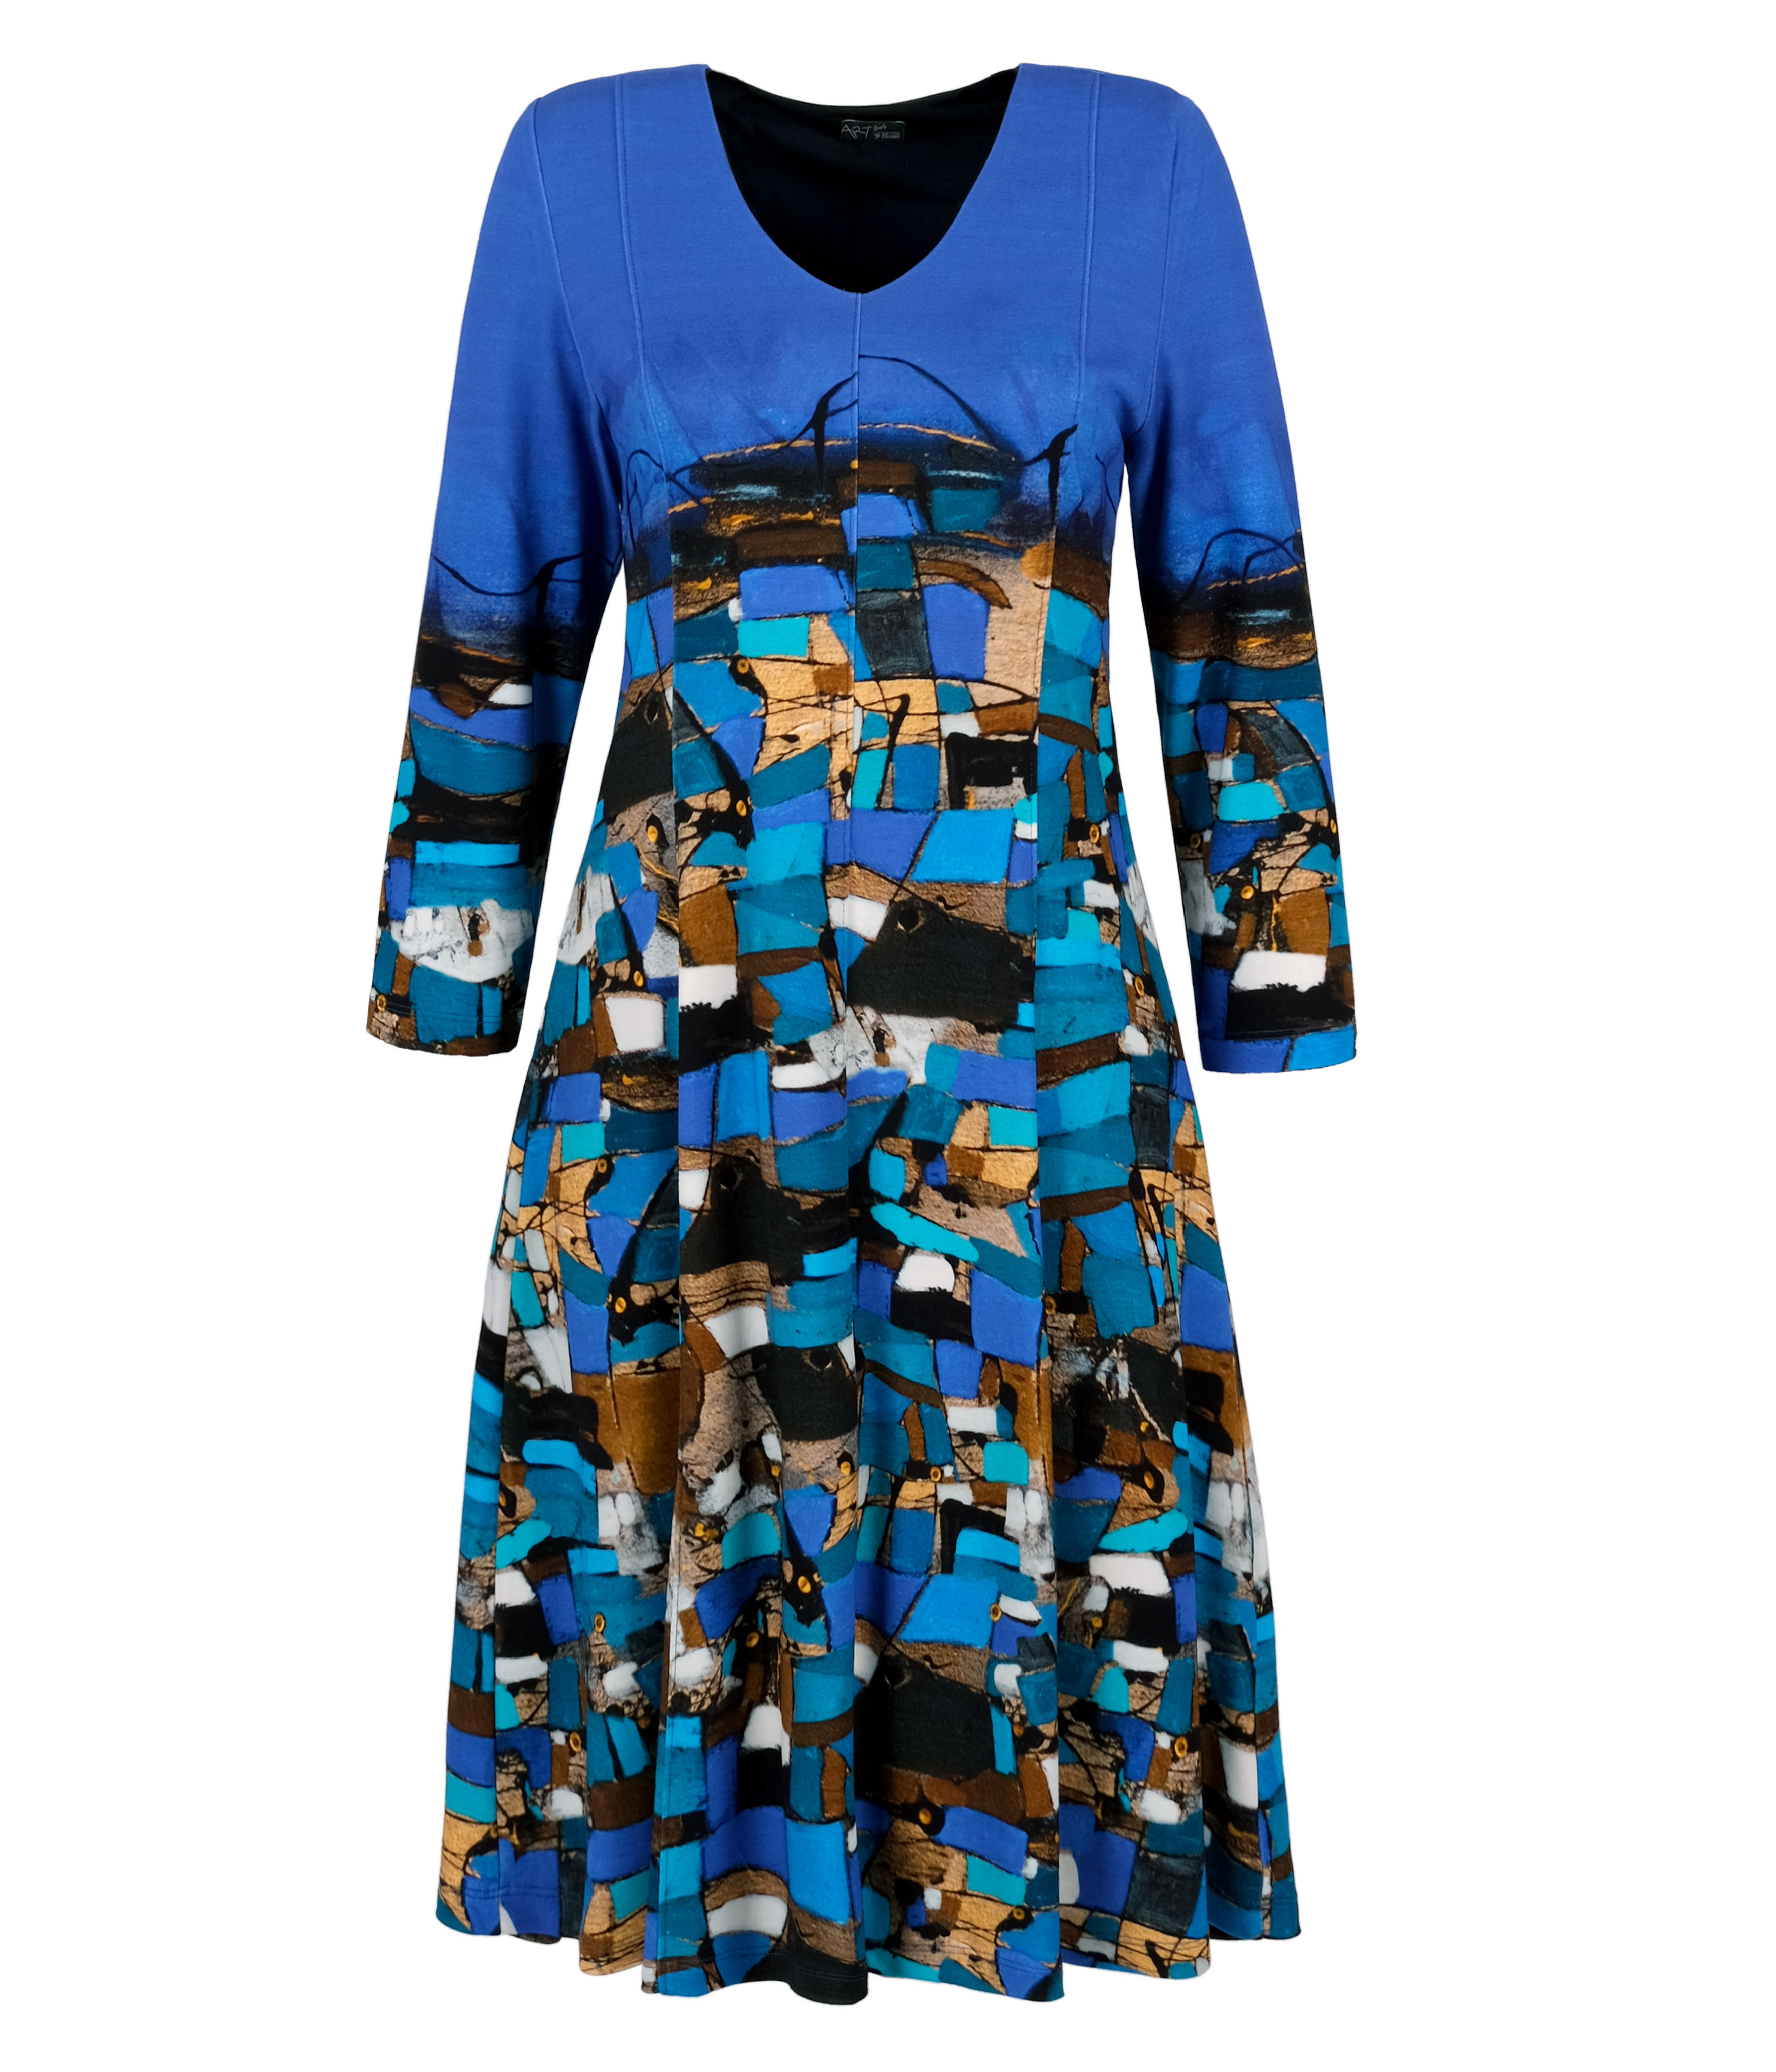 Simply Art Dolcezza: Puente Azul Abstract Art Flared Dress (1 Available at Special Price!) Dolcezza_SimplyArt_70683